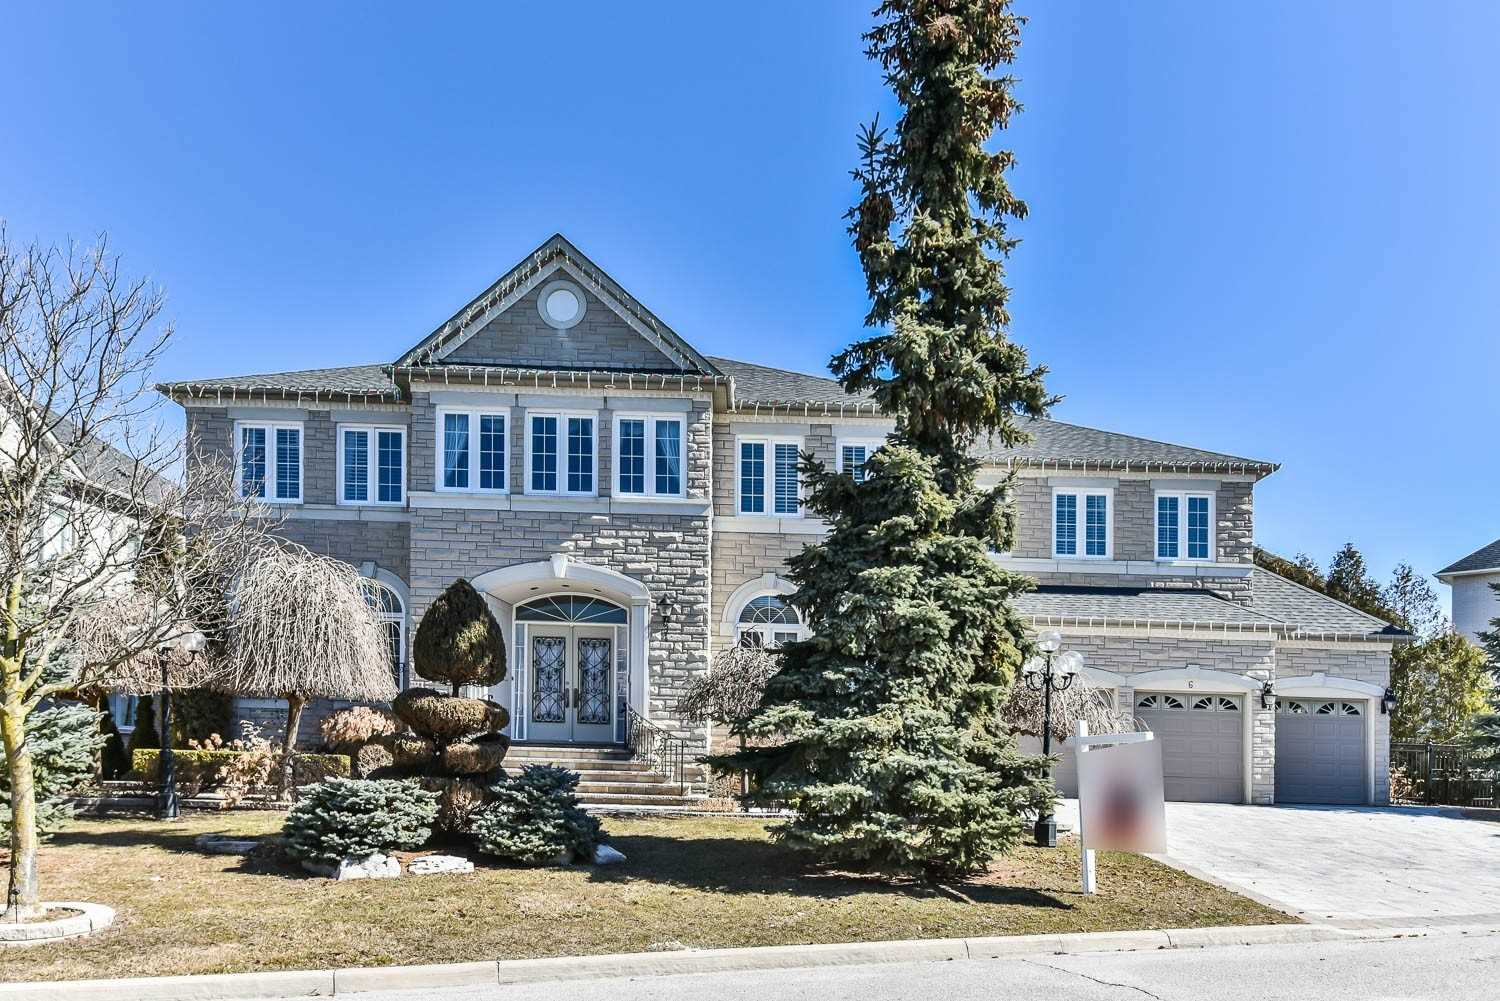 Impressive 7000Sf Nastasi Built Magnificent Mansion!! One Of The Best Appeal Cul De Sac In Prestigious Bayview Hill. Mins Walking To Park & Conservation. Top Ranking Schools. Luxuriously Newly Finished Basement With Theater, Bar & Gym. Extra Wide Stone Front Elevation W2 W5 Ensuites. Lovely Lushy Mature Landscaping!